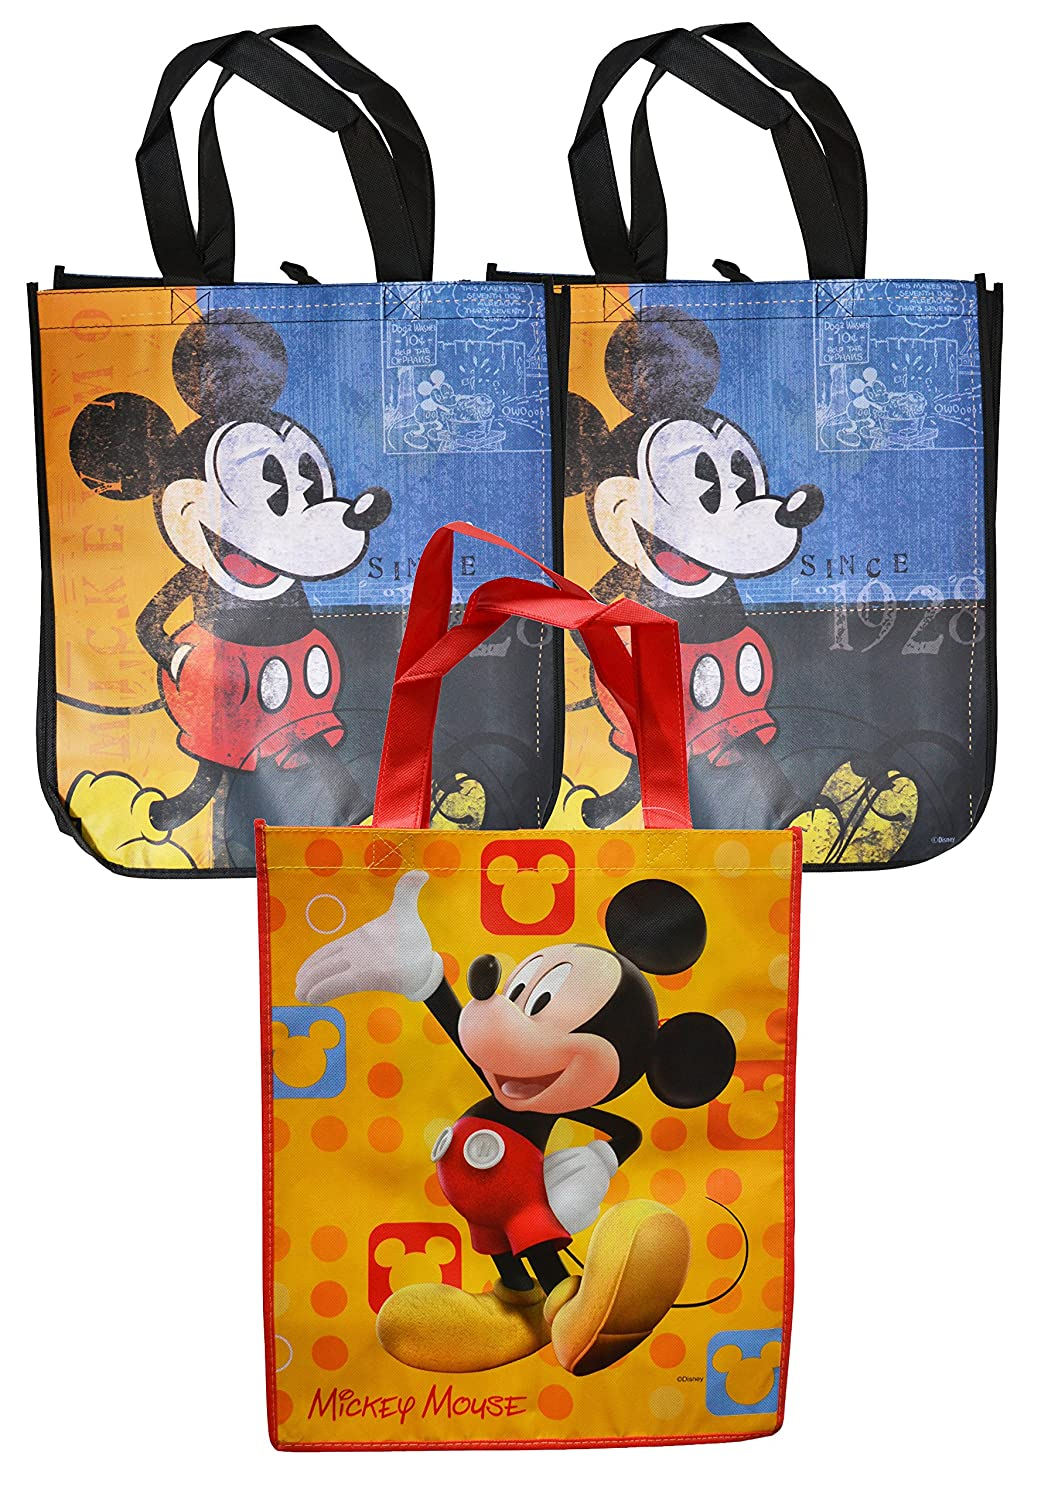 f3965424af Amazon.com  Disney Mickey Mouse Reusable Grocery Tote Bags Set of 3   Kitchen   Dining